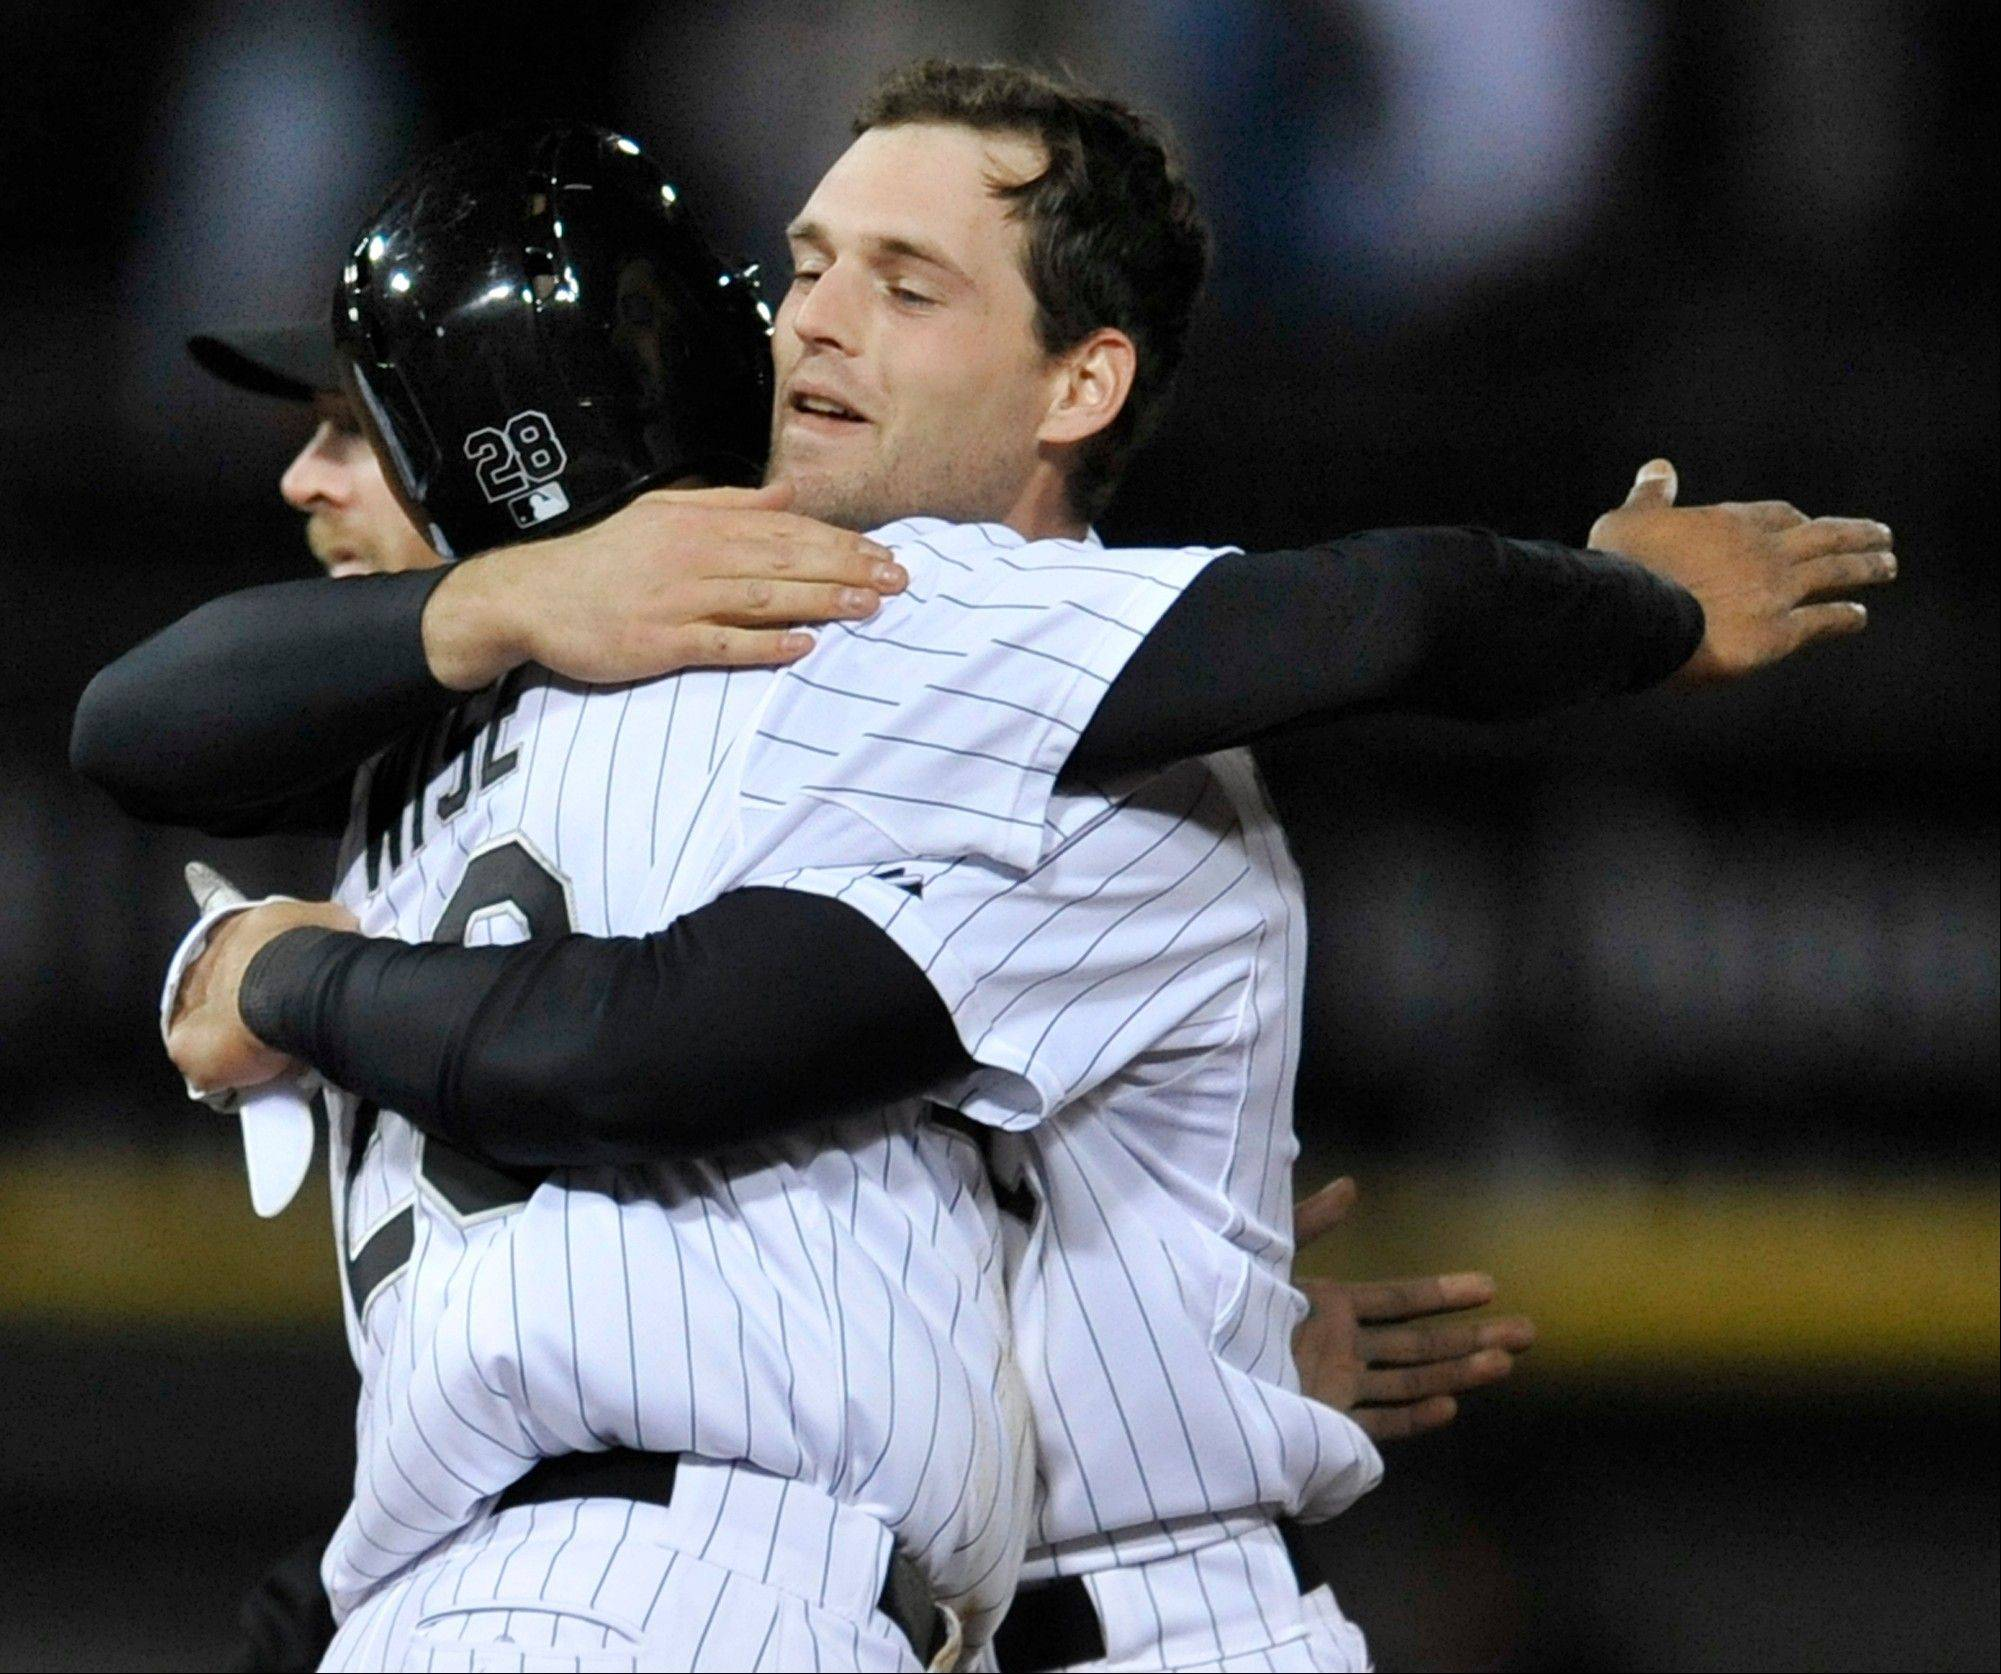 Chicago White Sox's Conor Gillaspie, right, celebrates with teammate Dewayne Wise, left, after Wise scored the game-winning run on a single hit by Gillaspie during the ninth inning of a baseball game against the Miami Marlins in Chicago, Saturday, May 25, 2013. Chicago won 2-1.